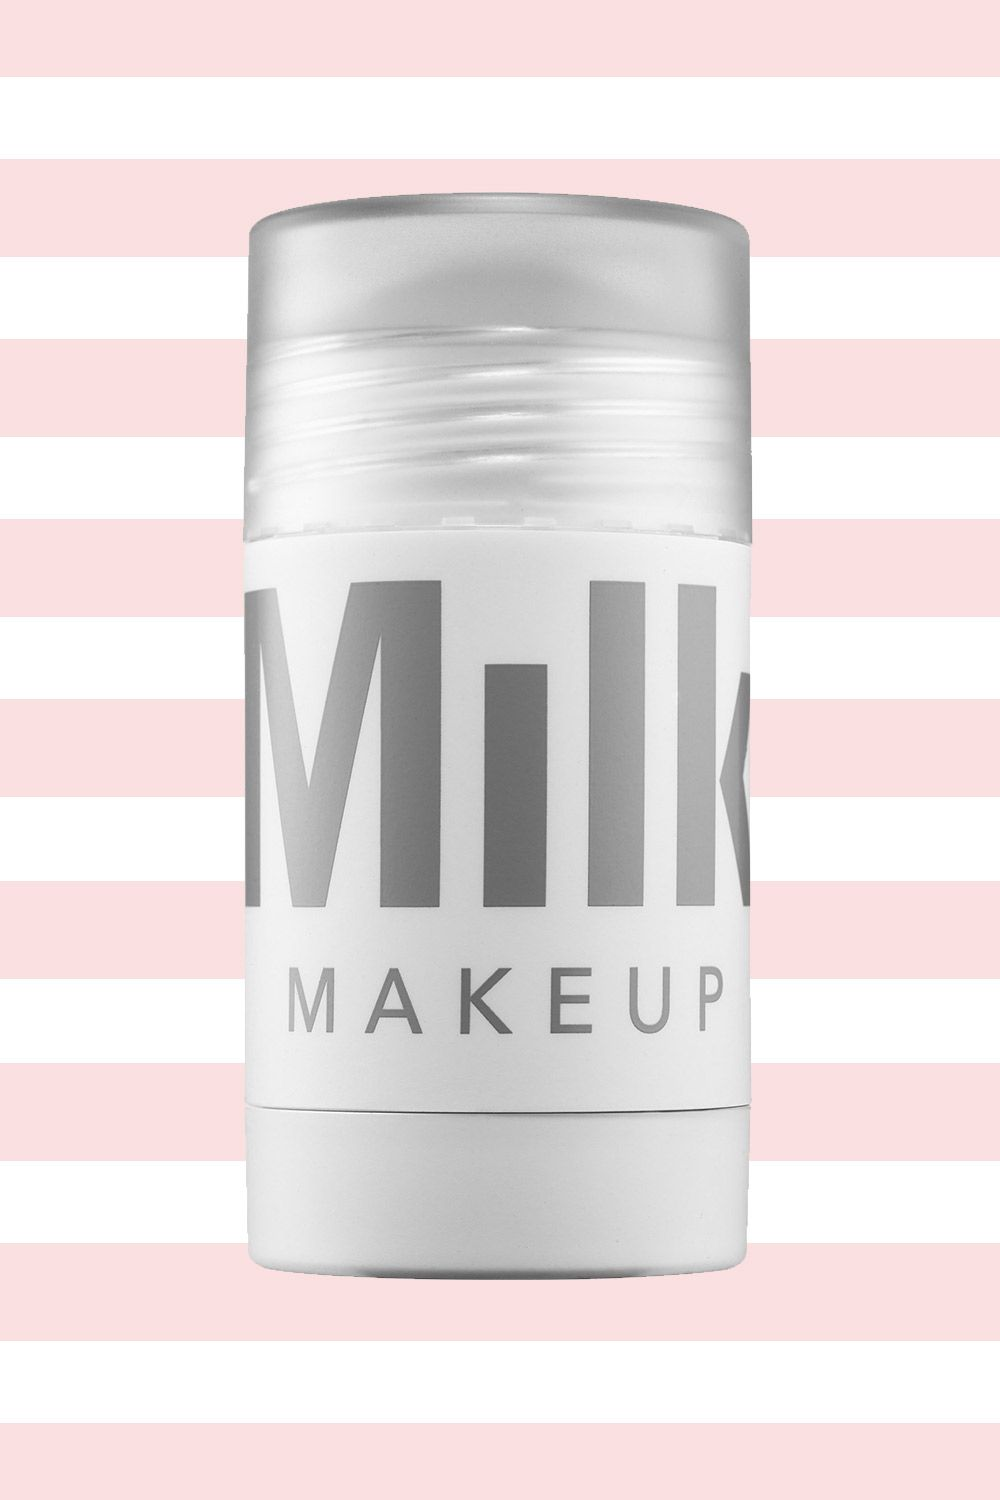 """<p><a href=""""http://www.marieclaire.com/beauty/makeup/news/a20355/milk-makeup-sold-out/"""">Milk Makeup's full collection is truly game-changing</a>, and this pint-sized natural deodorant stick is no exception. The trick to the formula is soothing lavender oil that doesn't burn pits, and is virtually odorless (a common complaint of natural deodorants is the heavy scent). If needed, apply at the half-day mark for the best coverage.<strong></strong></p><p><strong>Milk Makeup Natural Deodorant, $14&#x3B; <a href=""""https://milkmakeup.com/products/natural-deodorant/"""" target=""""_blank"""">milkmakeup.com</a>. </strong></p>"""